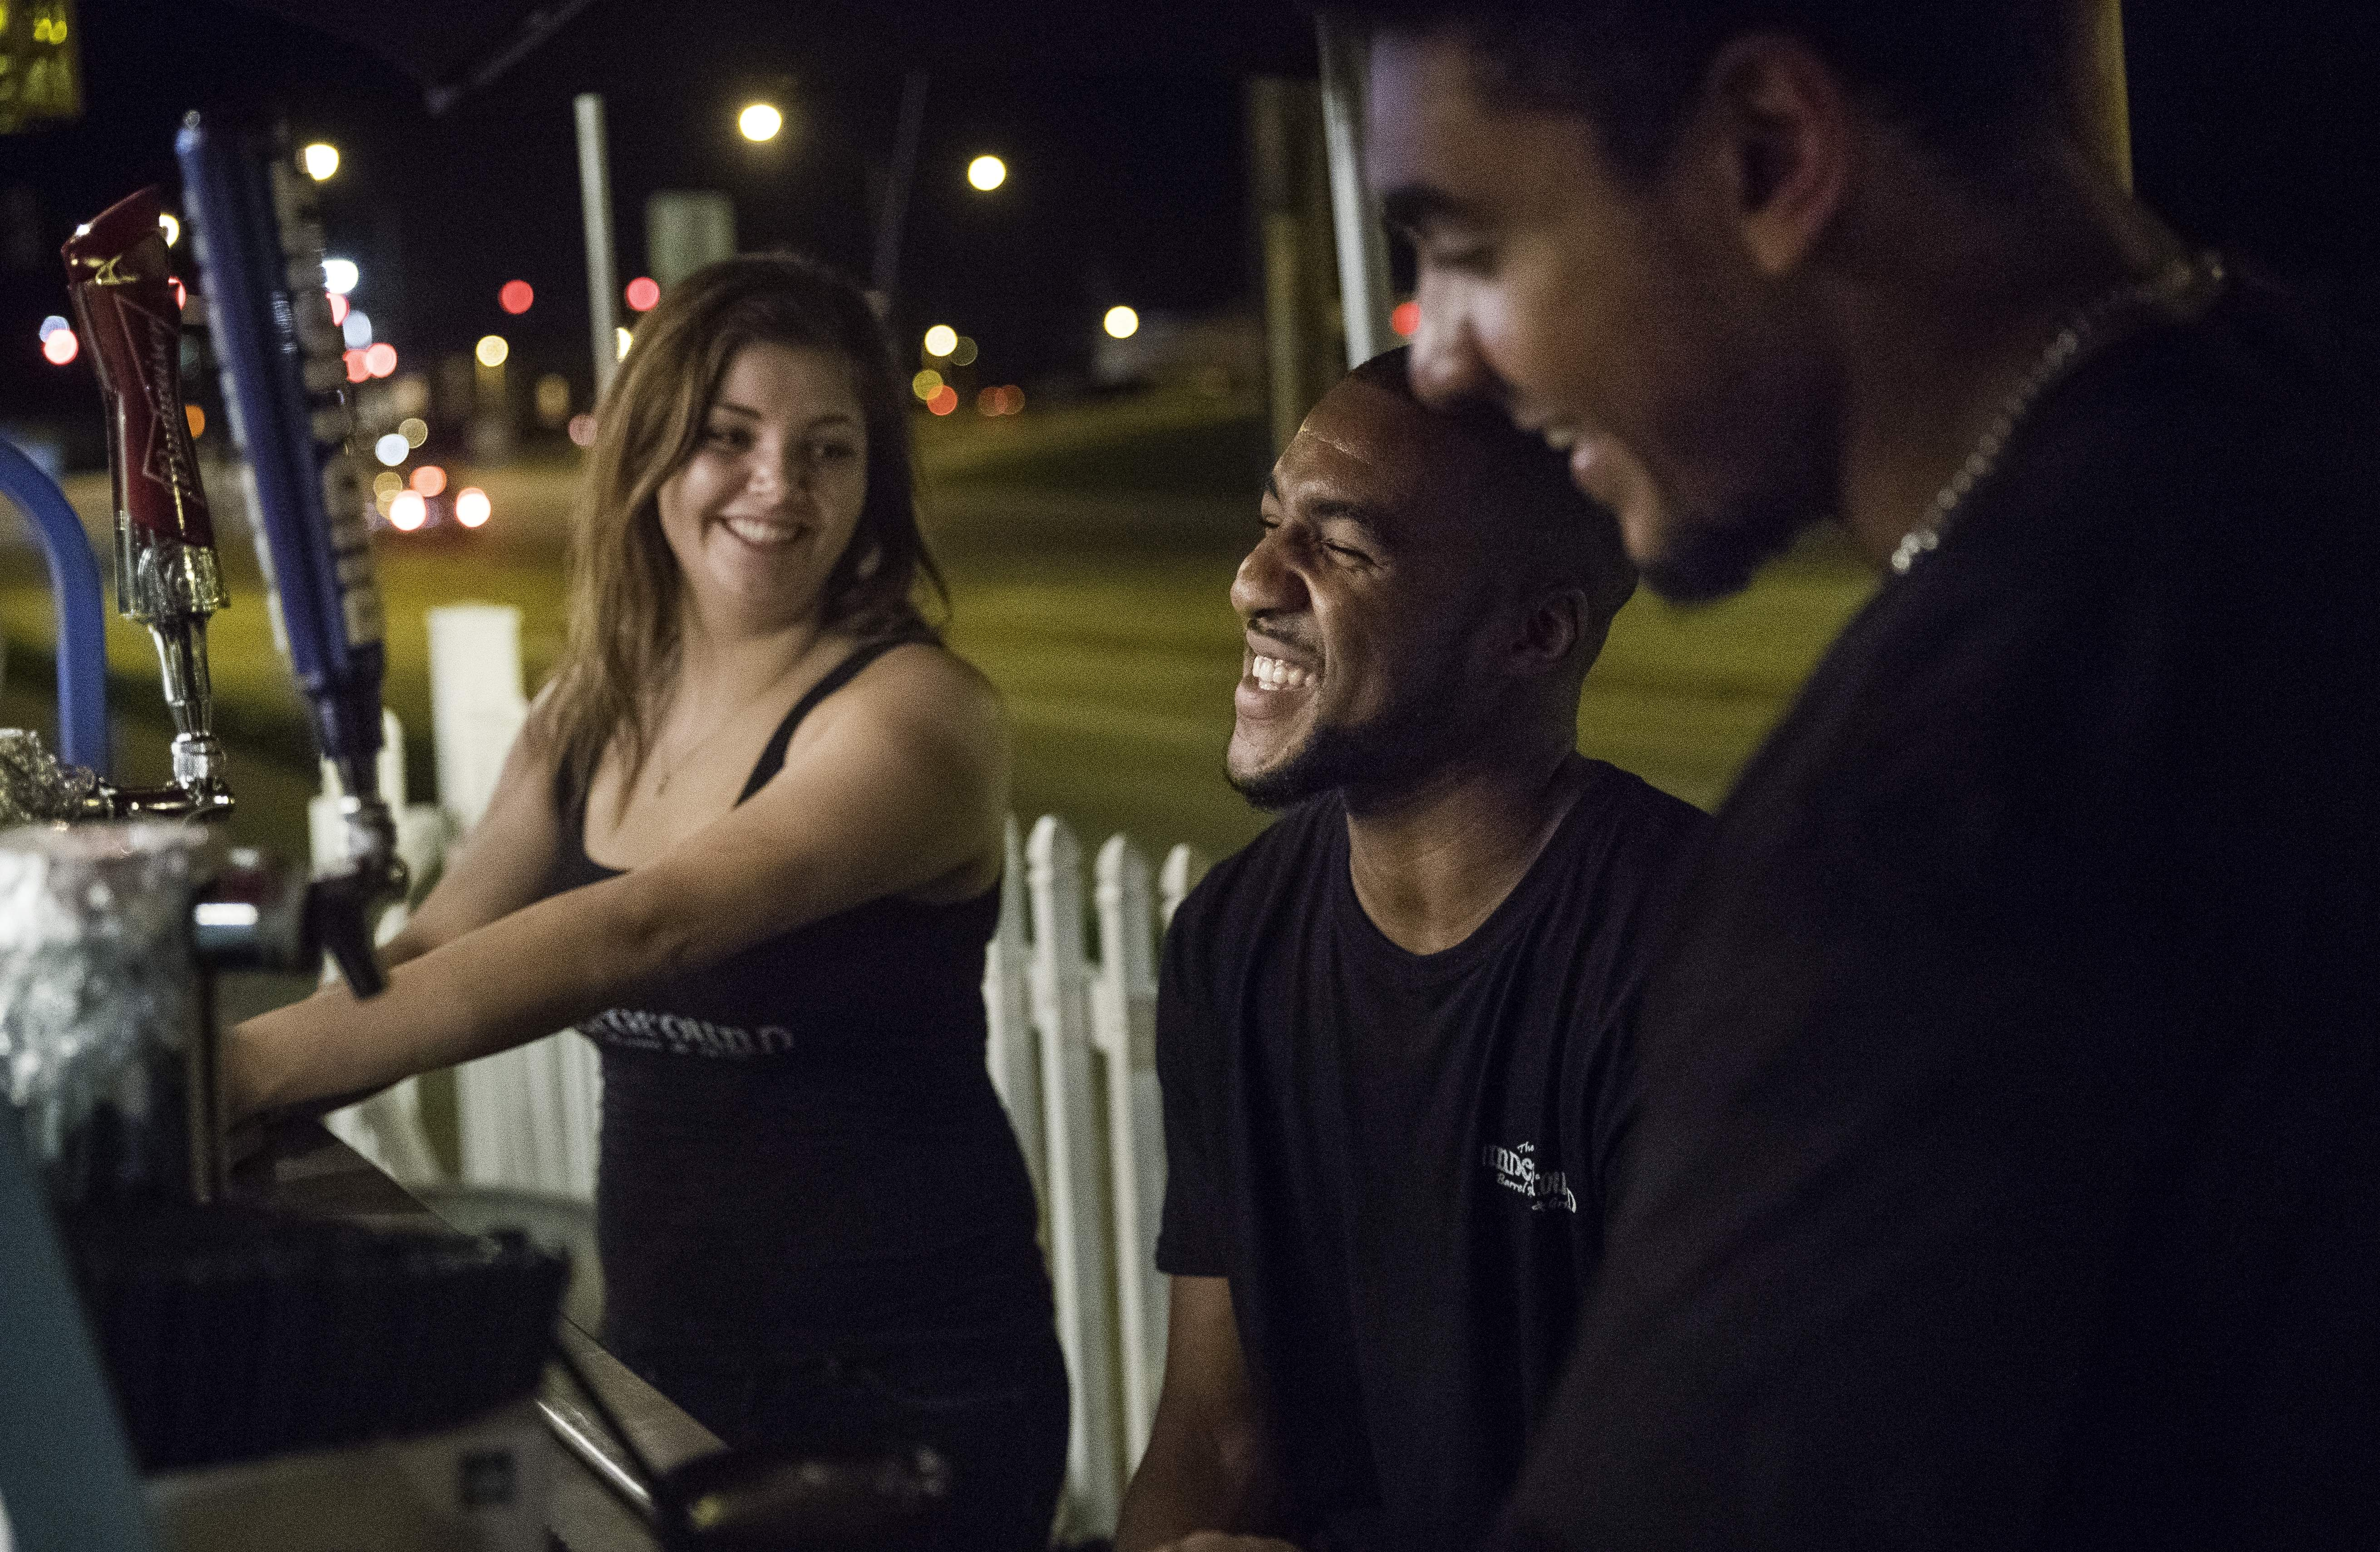 Nicole Mullaney, left, Devon King and Rocky Allen laugh as they pass the time waiting for customers in the beer garden at the Underground Barrel Room & Grill in downtown Carbondale Sunday, Aug. 20, 2017. 'It's not living up to the hype,' Allen said. 'It's been about thirty percent of what I expected.' [Ted Schurter/The State Journal-Register]